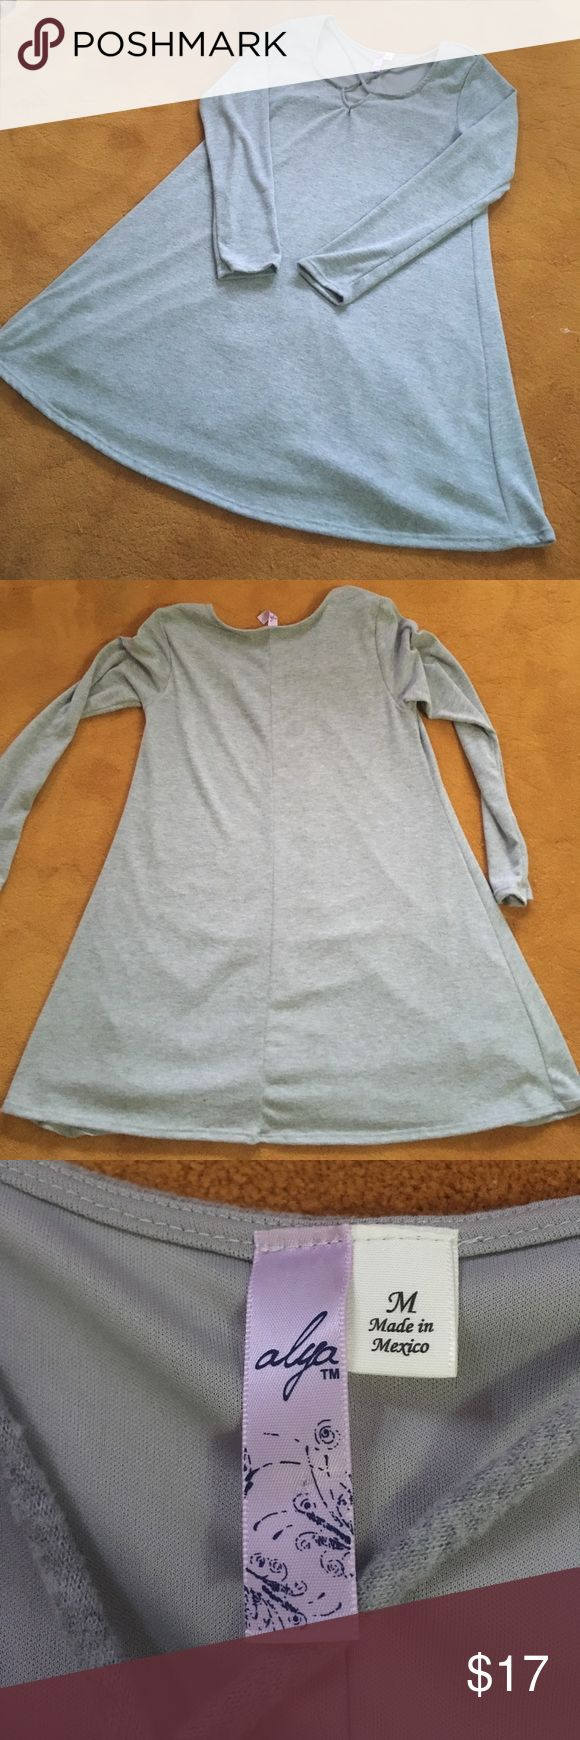 Long sleeved/ criss cross grey dress! Super cute, recently bought and never worn Francesca's grey long sleeved dress! Had a nice slip inside too. Perfect for fall or a cold summer day.  Has a cute criss cross design in front! Size medium! And it's stretchy! Francesca's Collections Dresses Long Sleeve